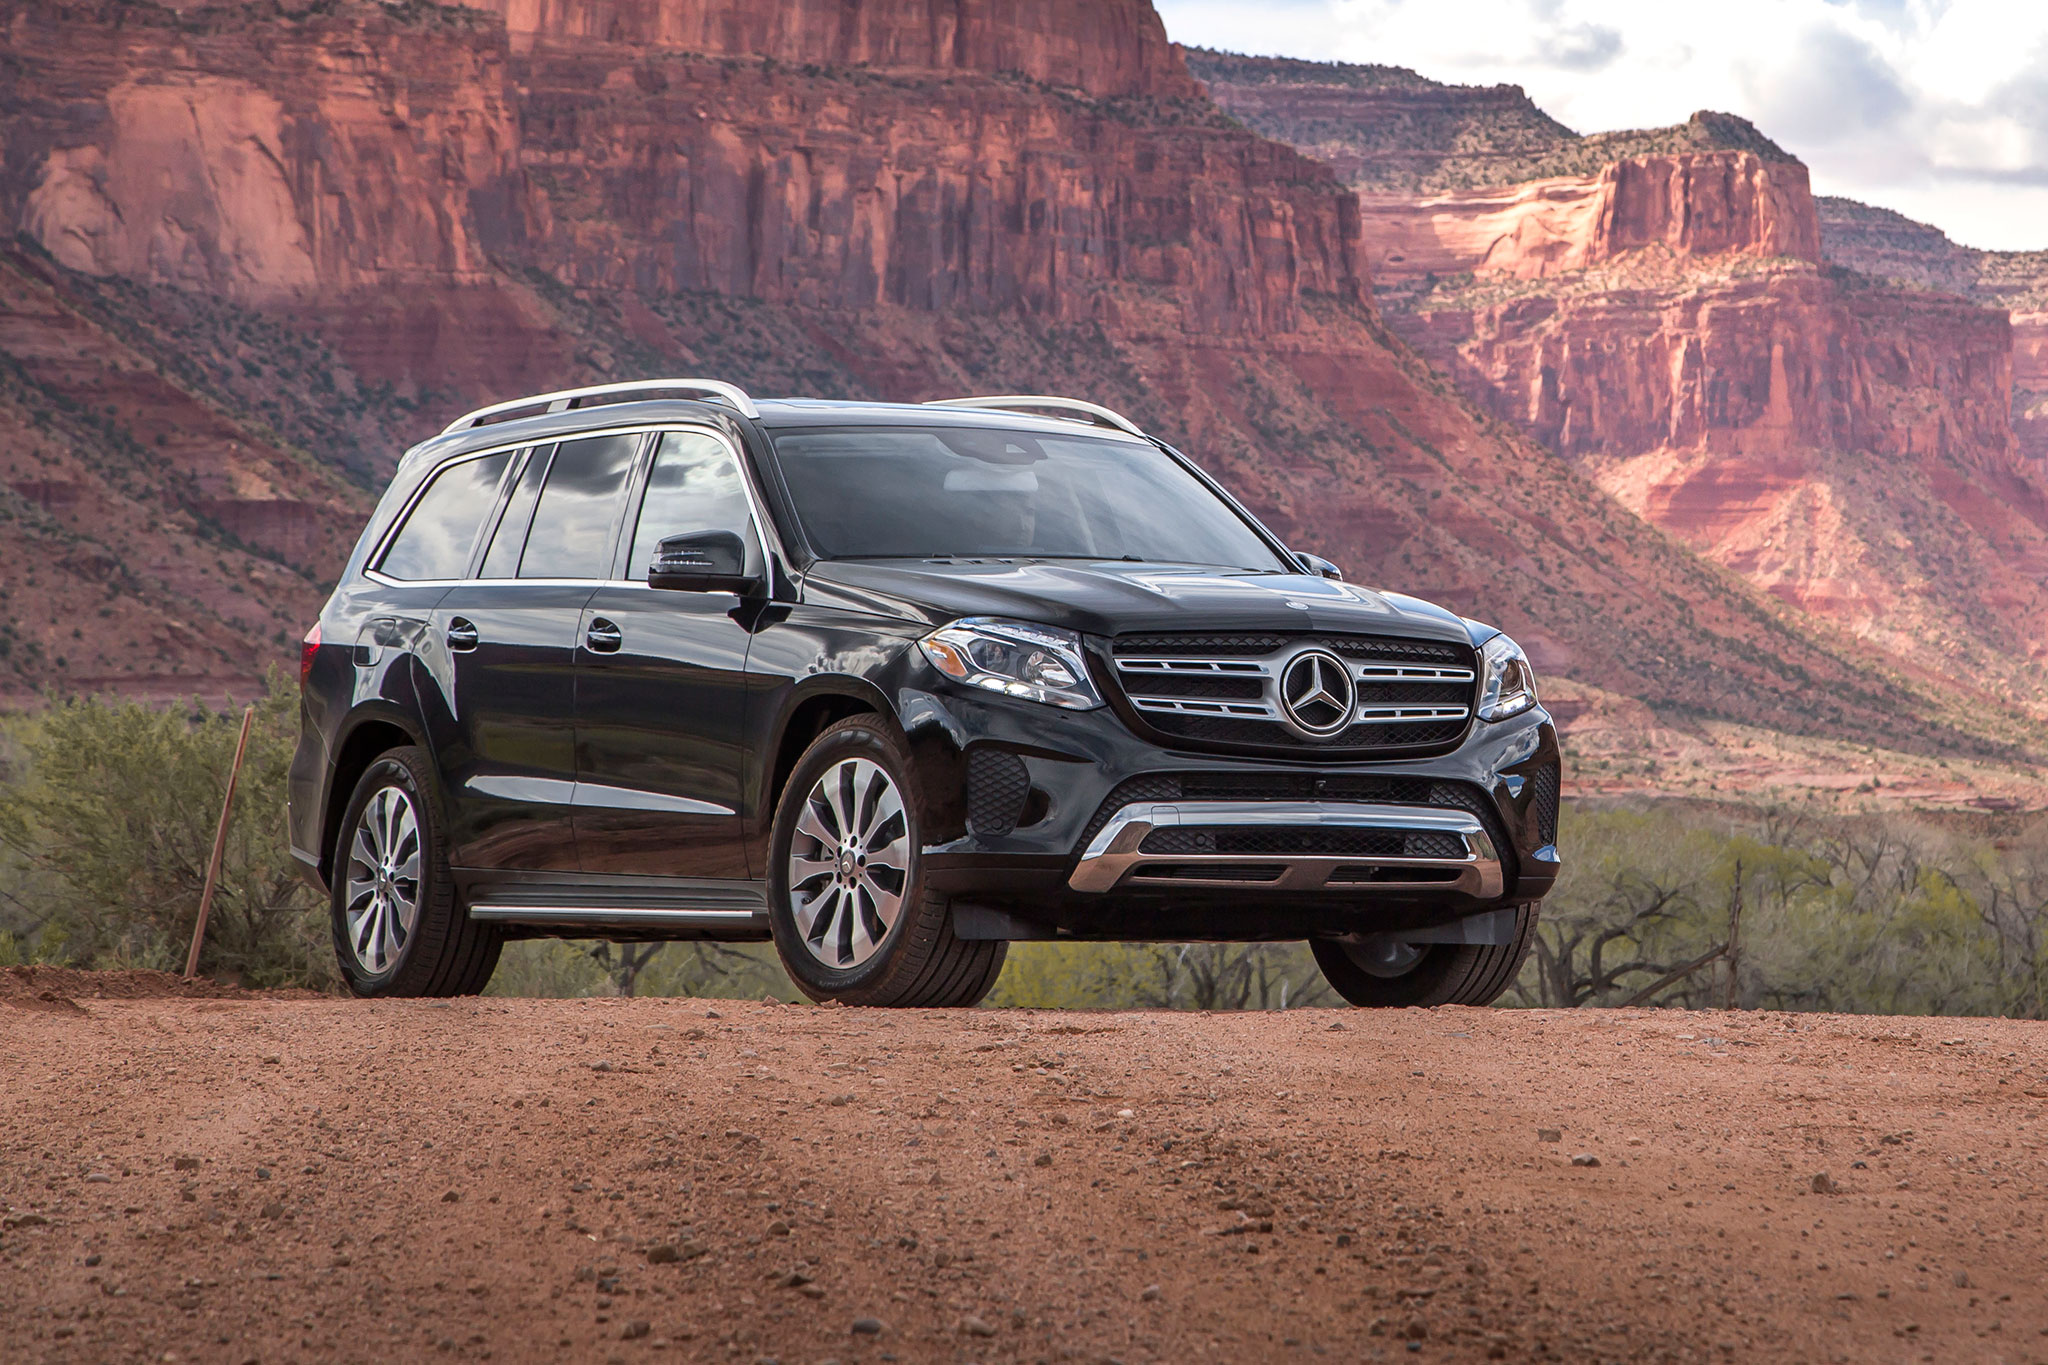 2017 Mercedes Benz Gls450 4matic >> 2017 Mercedes-Benz GLS-Class Review